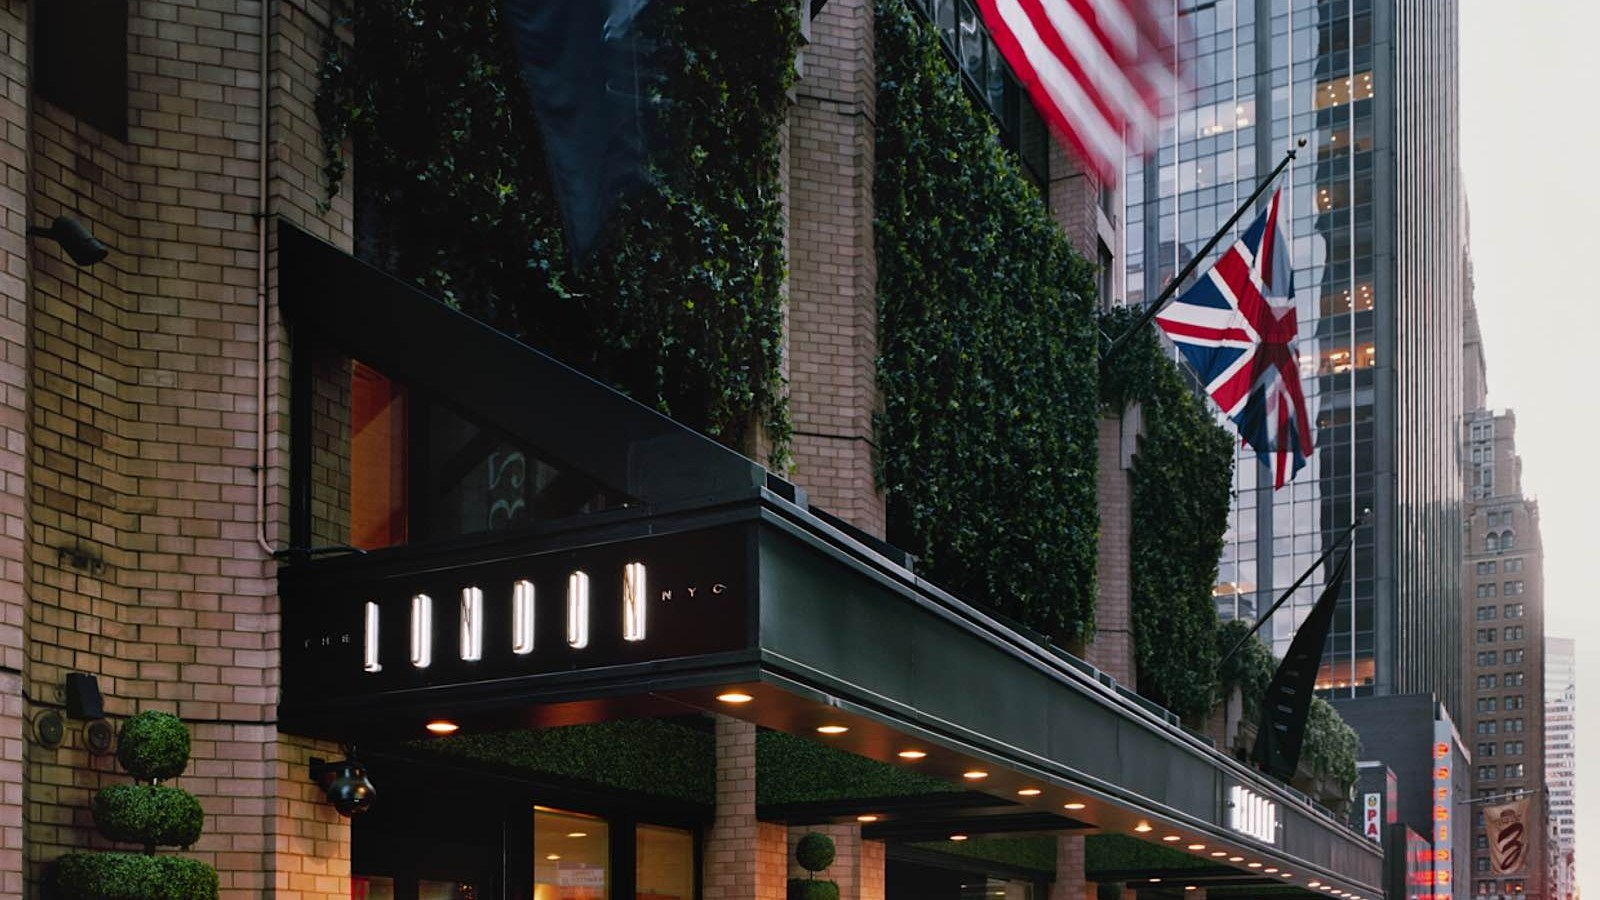 Conrad Hotels Resorts To Manage Rebrand The London Nyc Hotel Management